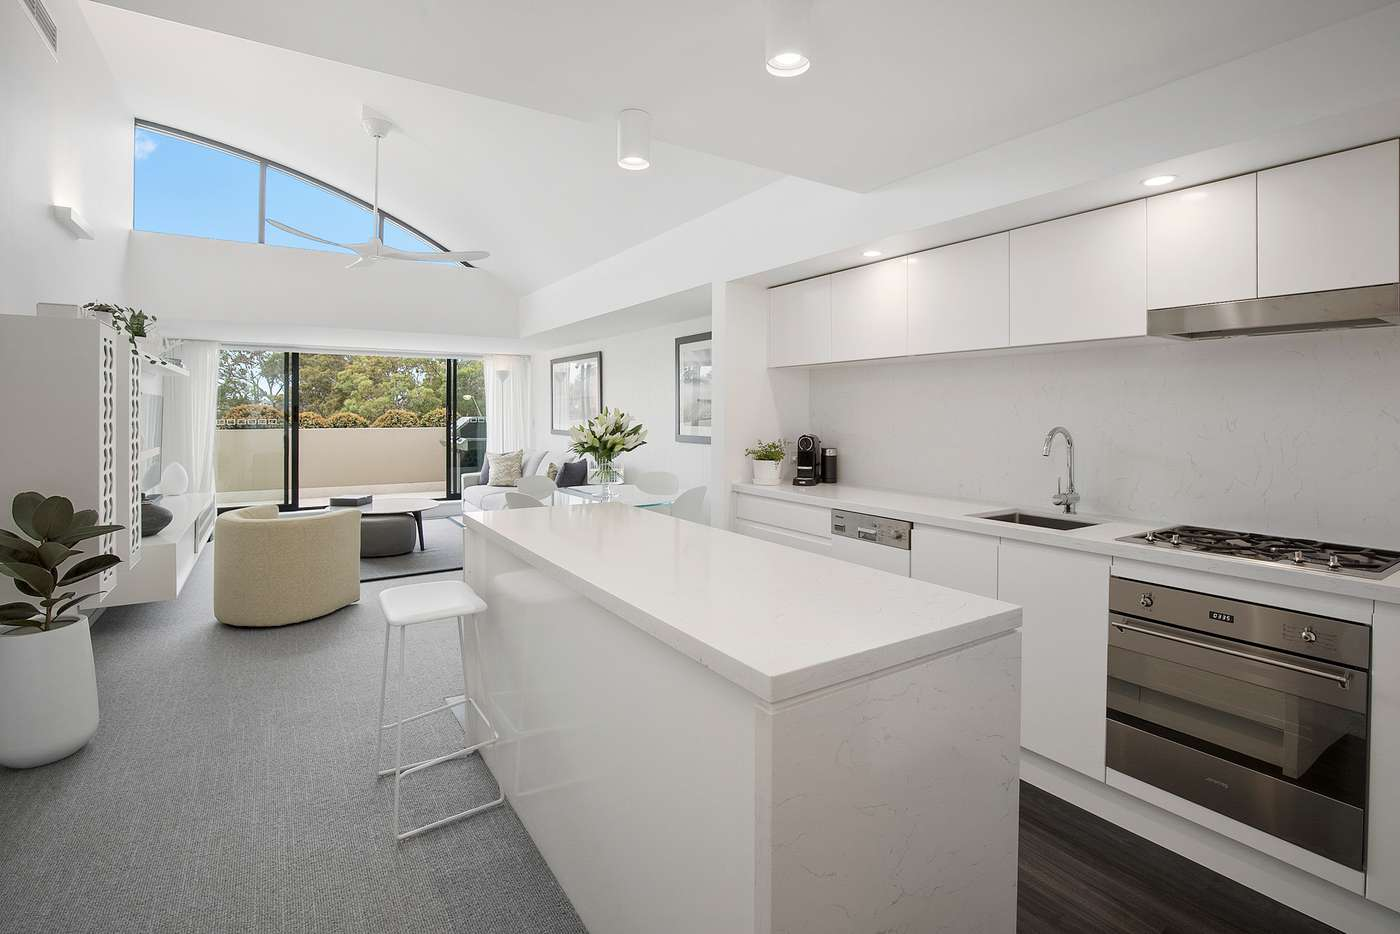 Fifth view of Homely apartment listing, 15/567 Sydney Road, Seaforth NSW 2092